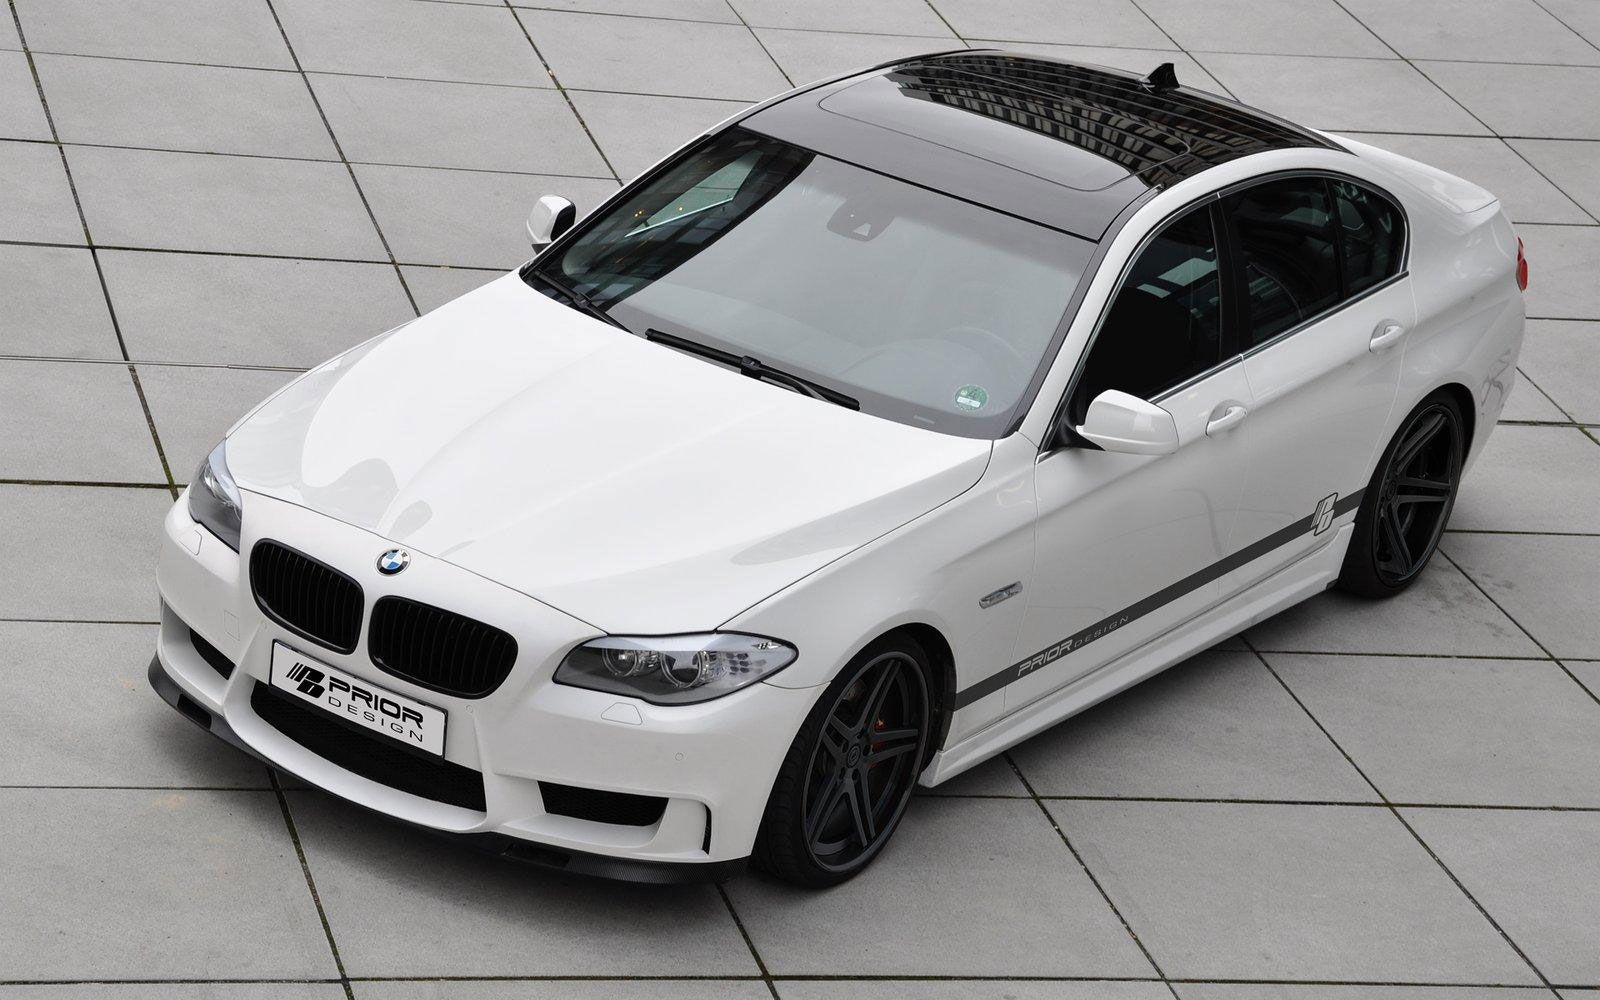 small resolution of bmw 5 series white bmw 5 series wallpaper hd wallpapers